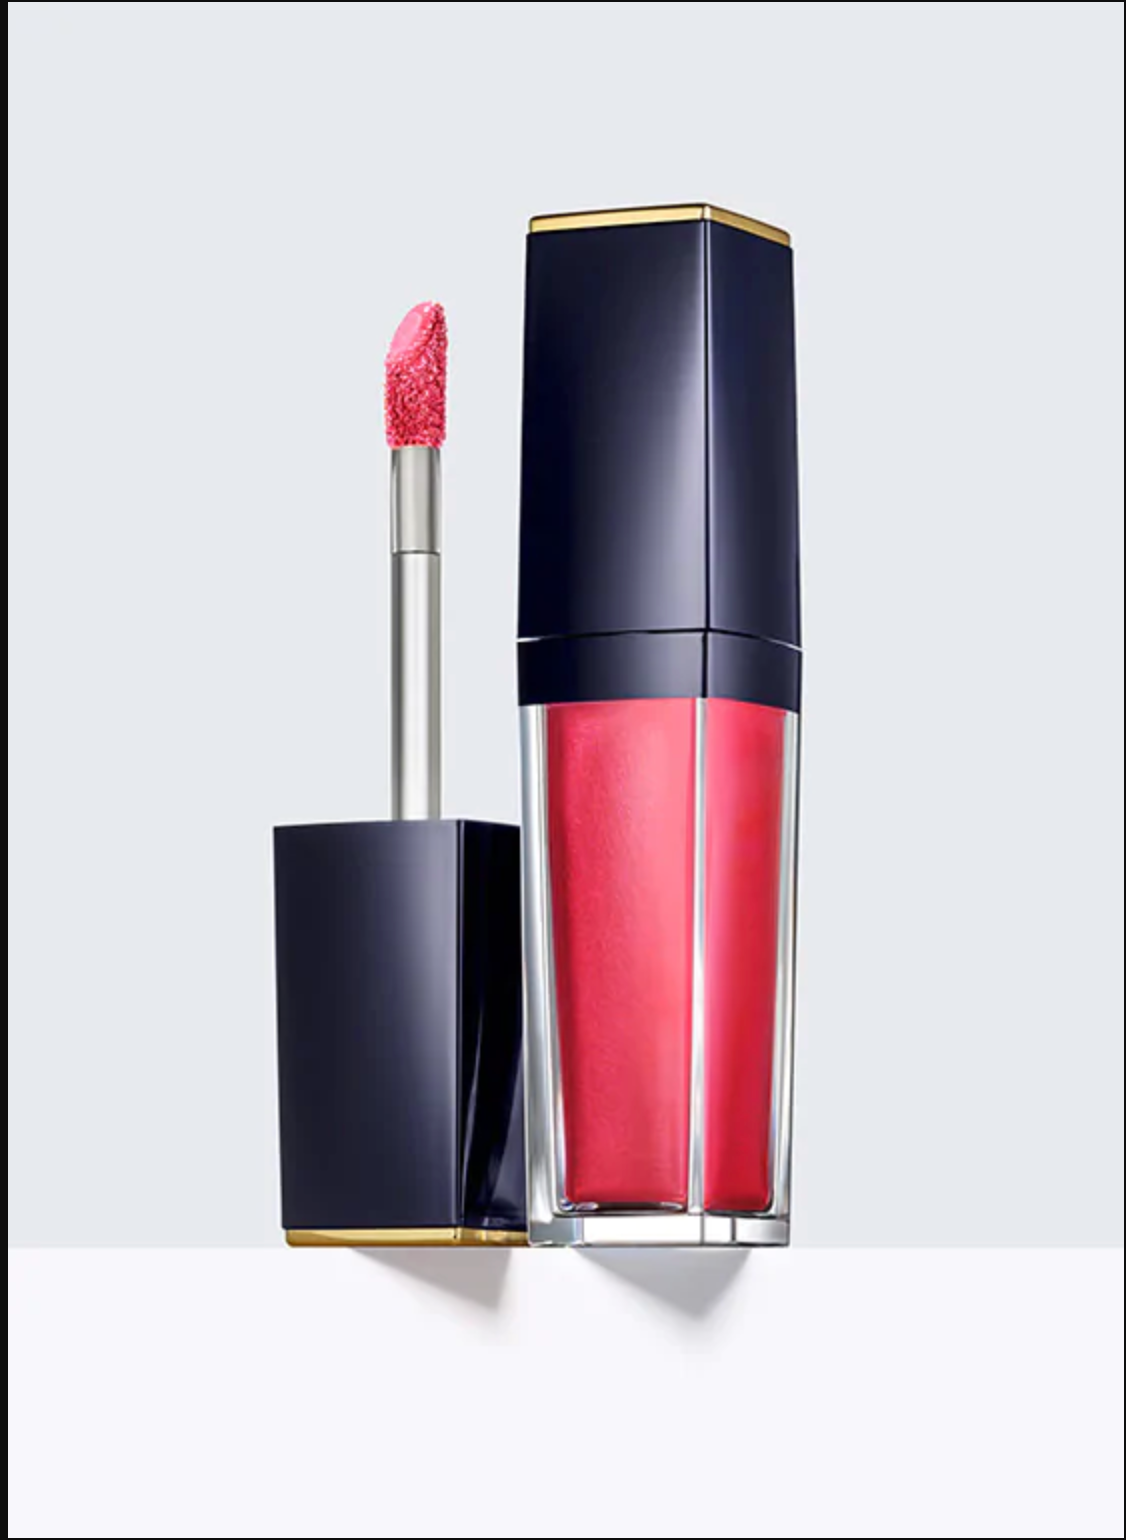 Primary image for Estee Lauder Pure Color Envy Paint-on Liquid Lip 309 Metallic Glo-Coral BNIB/SDS